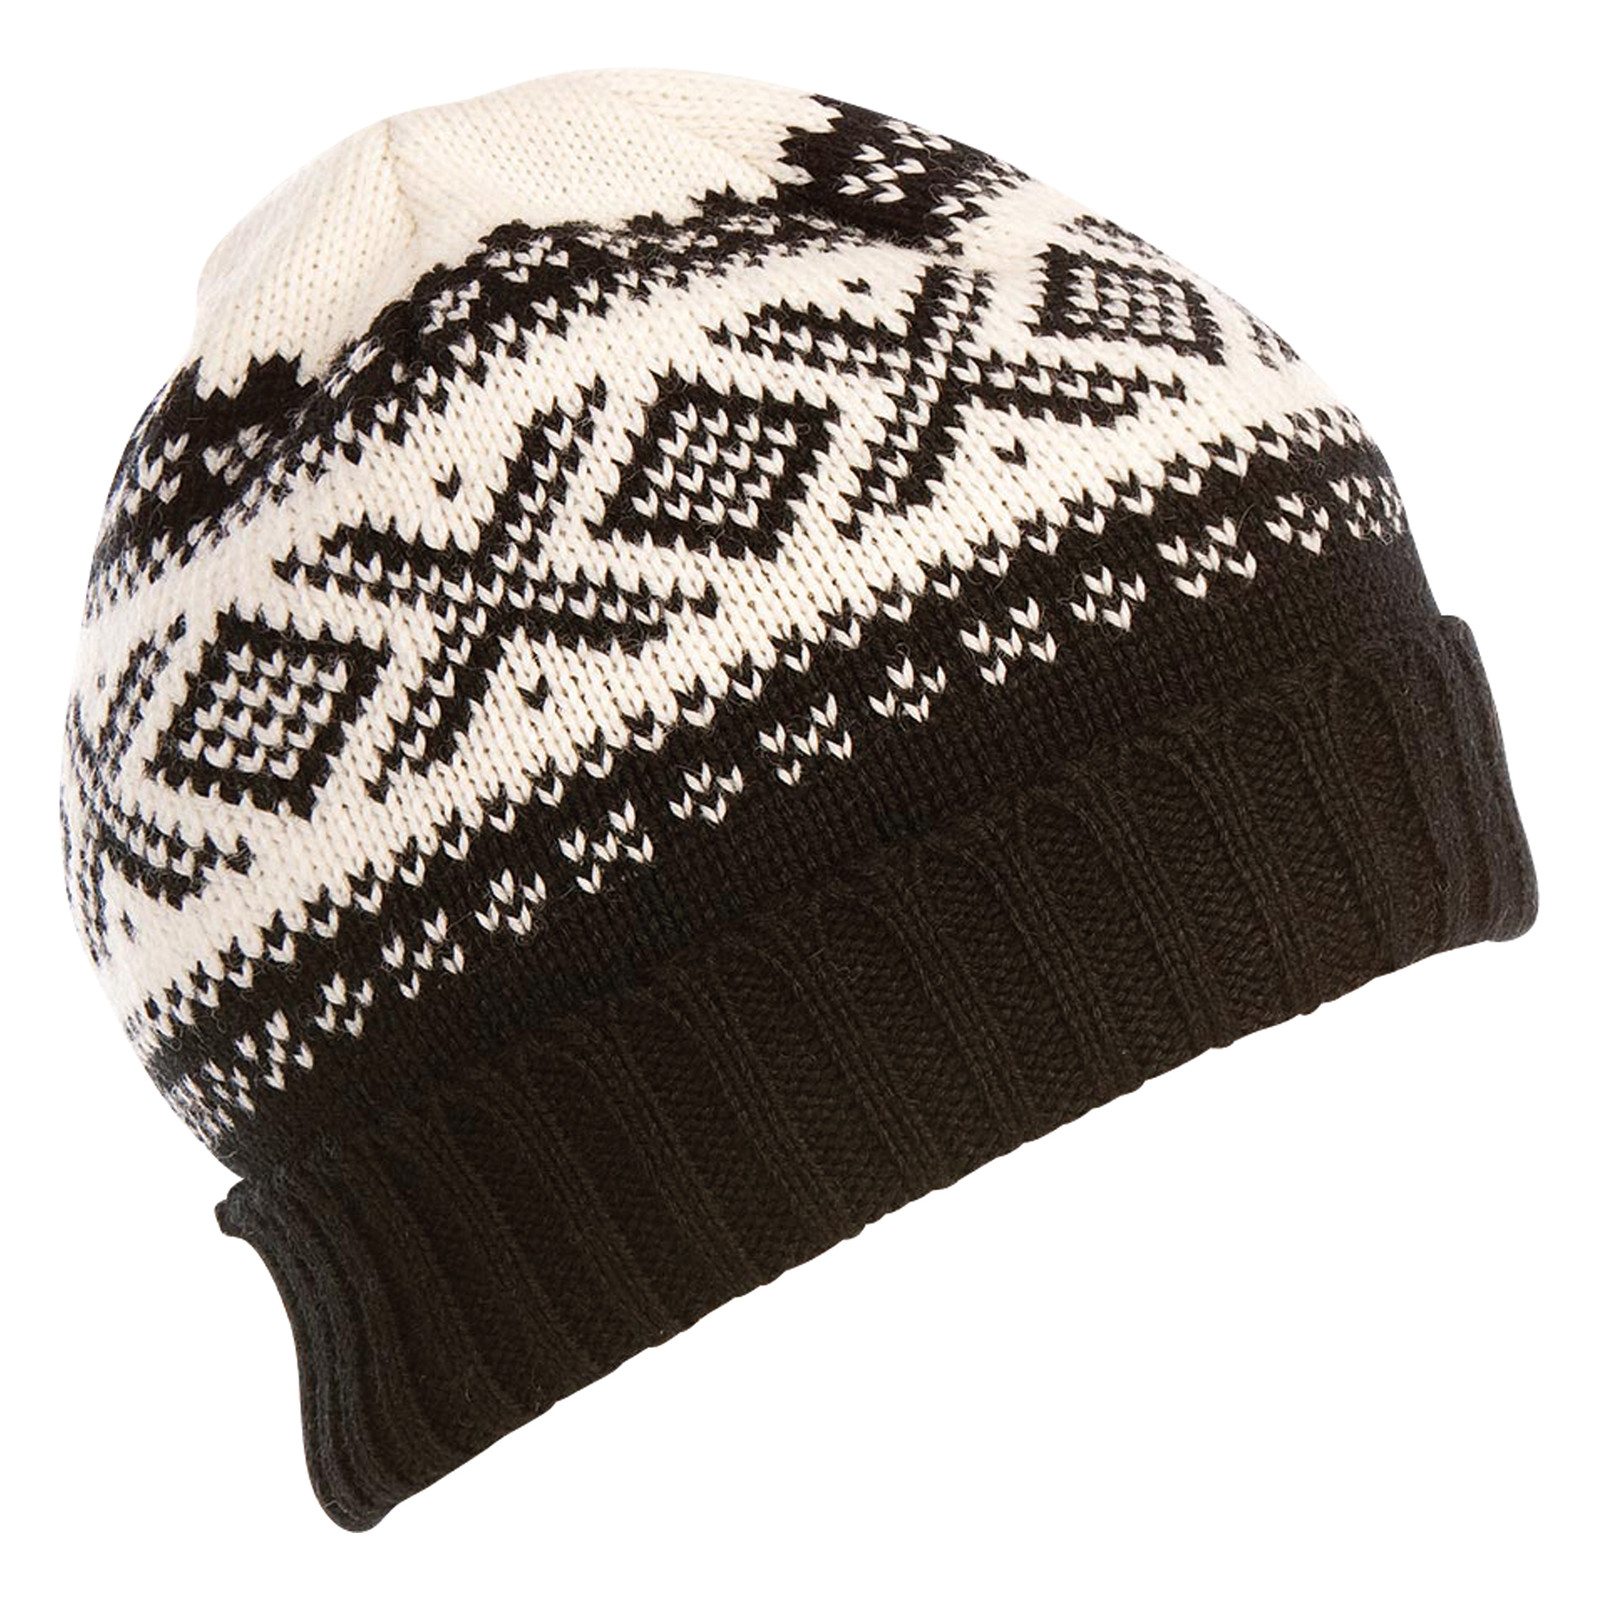 Dale of Norway, Cortina 1956 Unisex Hat in Black/Off White, 42261-F